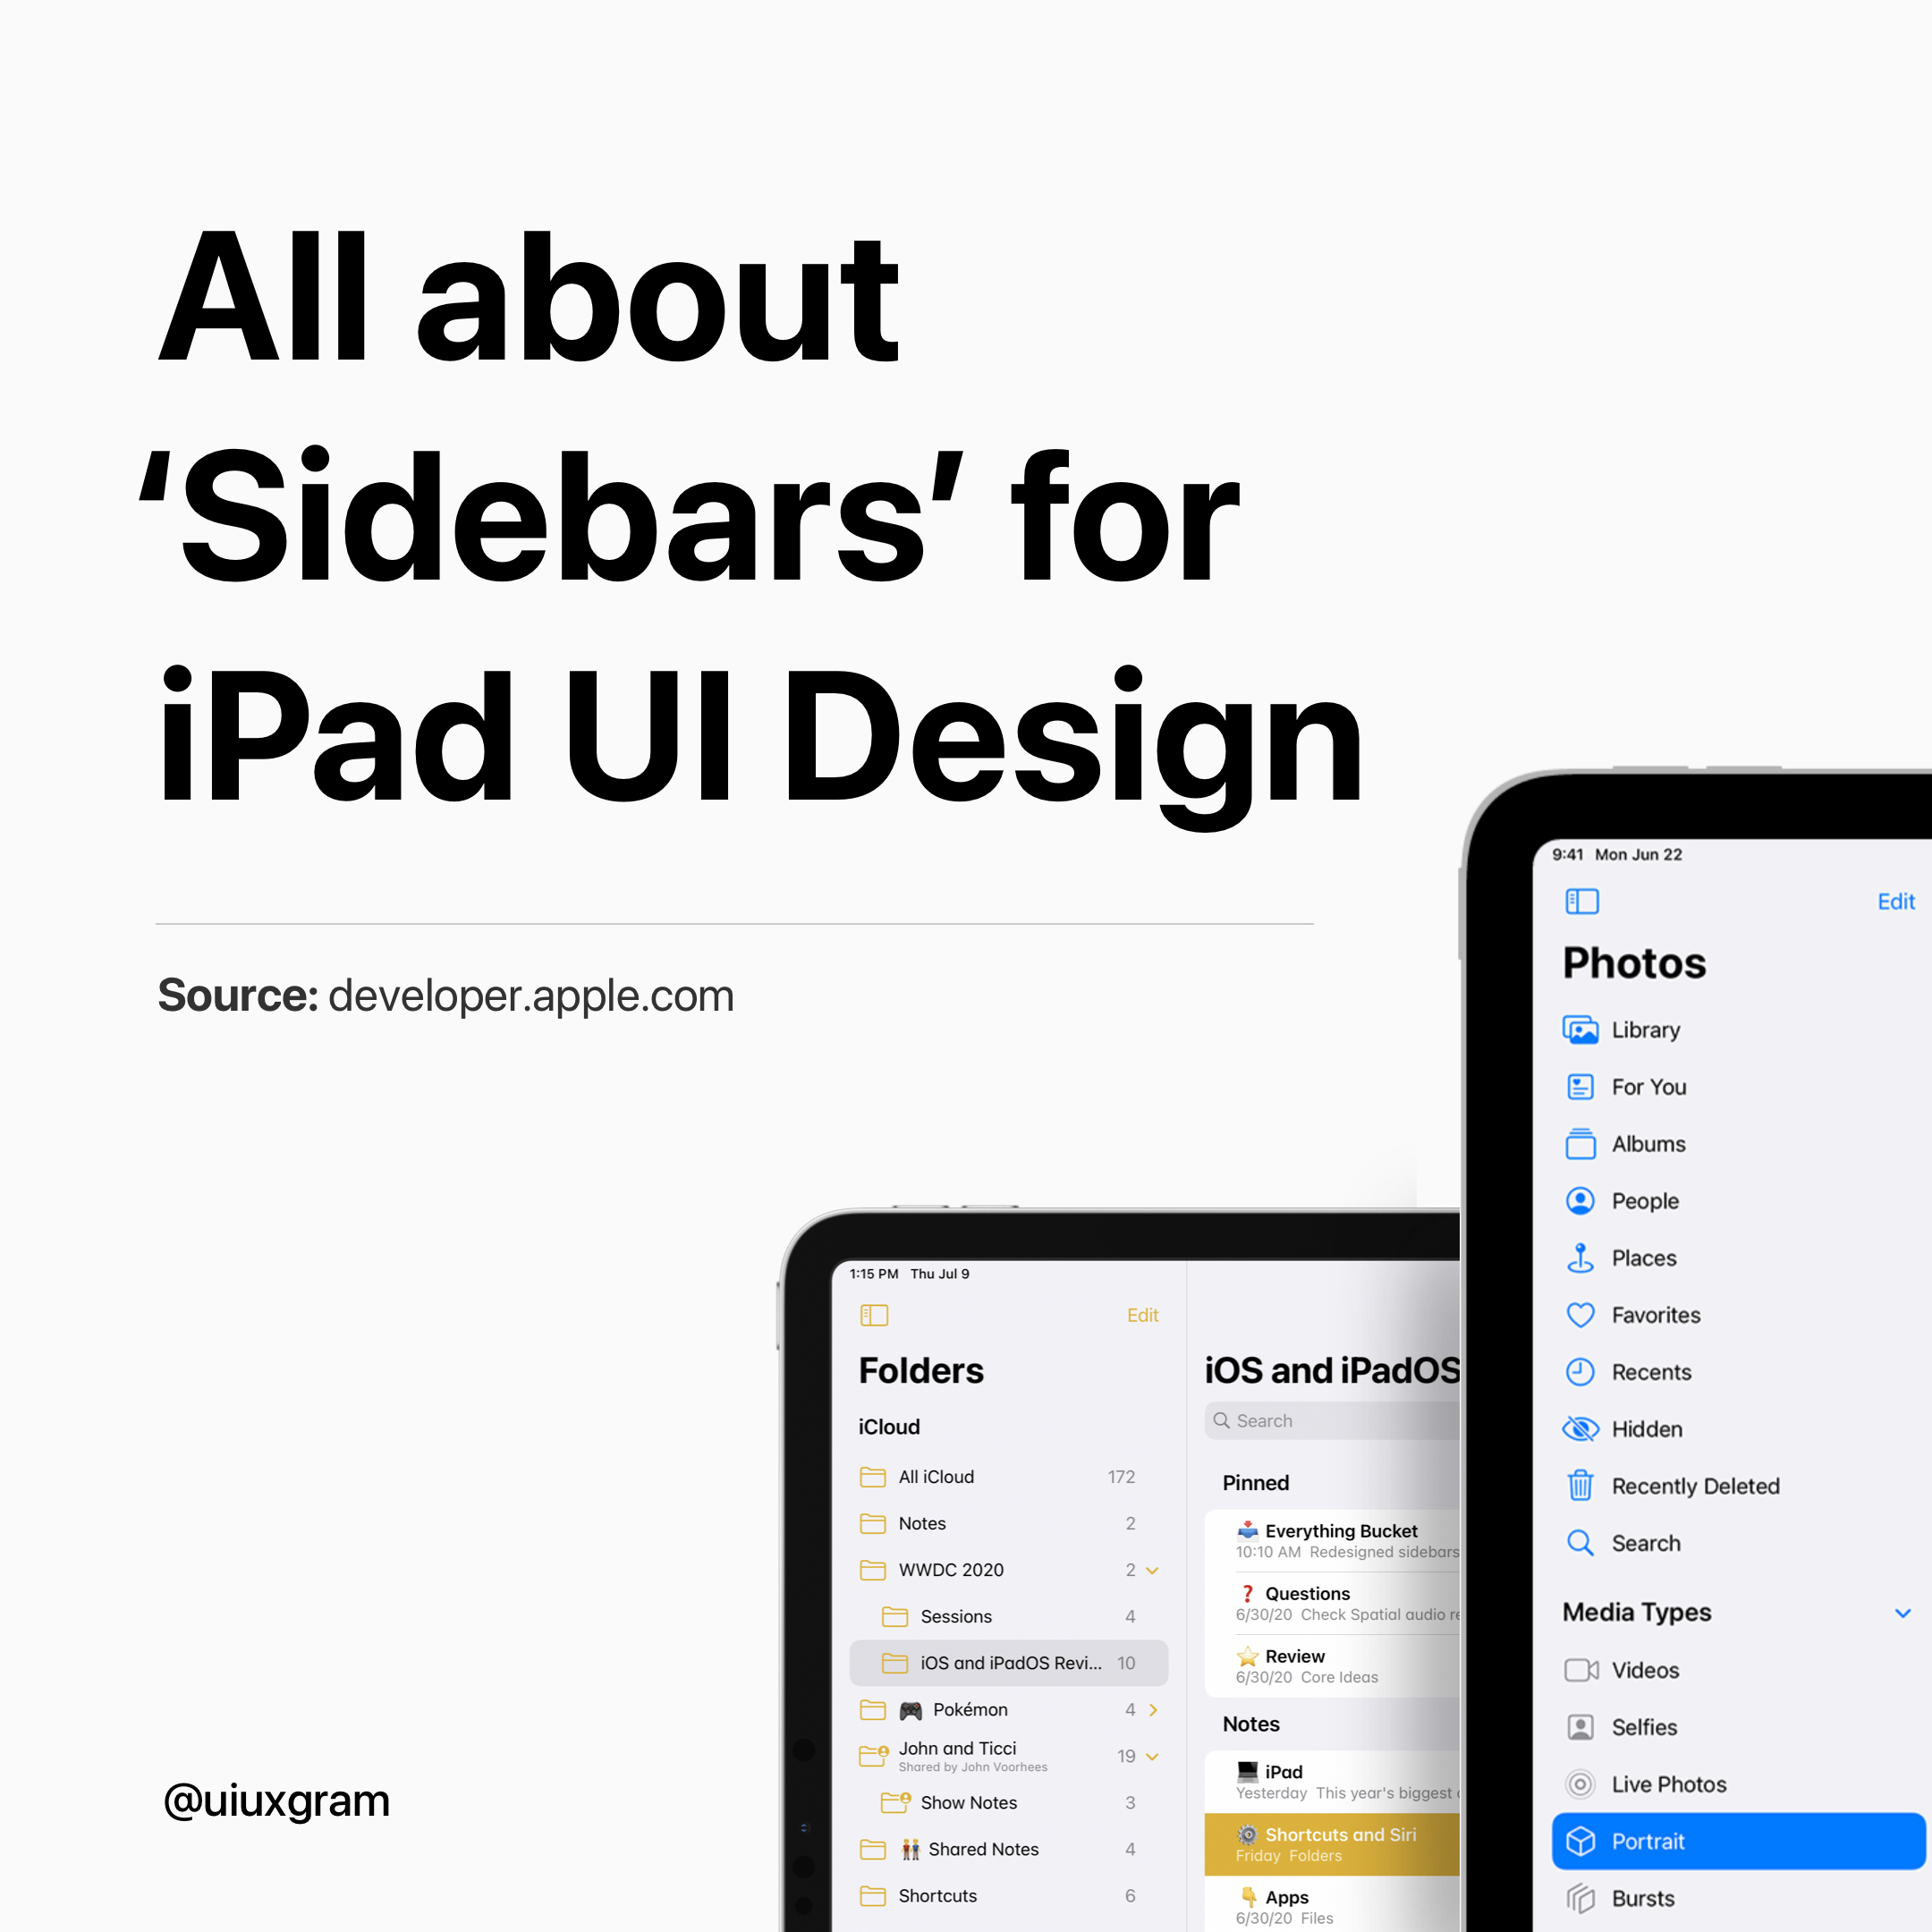 All about 'sidebars' for iPad UI design